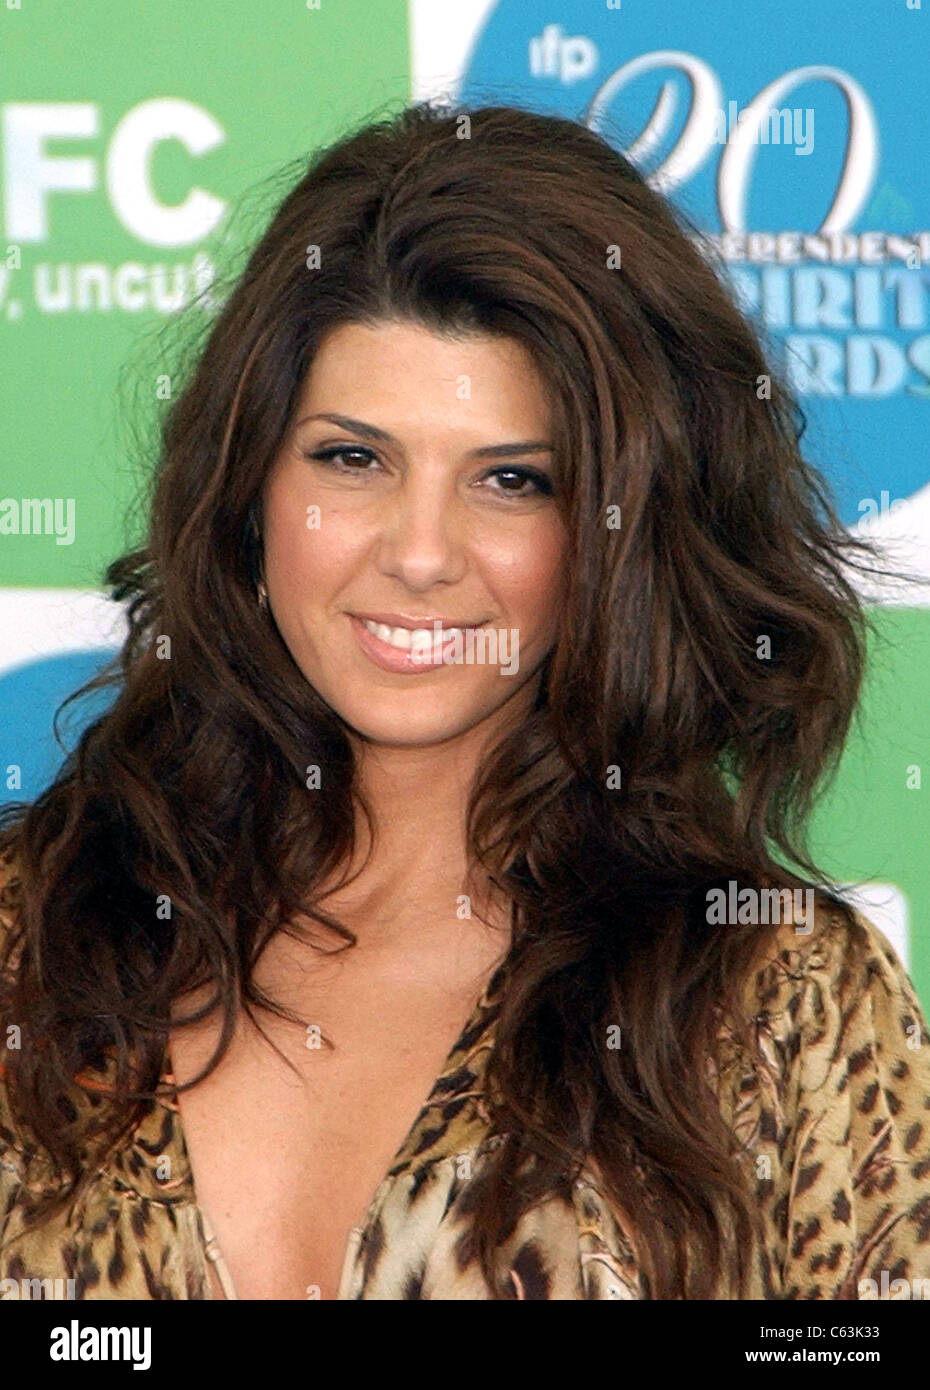 Marisa Tomei at arrivals for 20th IFP Independent Spirit Awards, Los Angeles, CA, Saturday, February 26, 2005. Photo - Stock Image